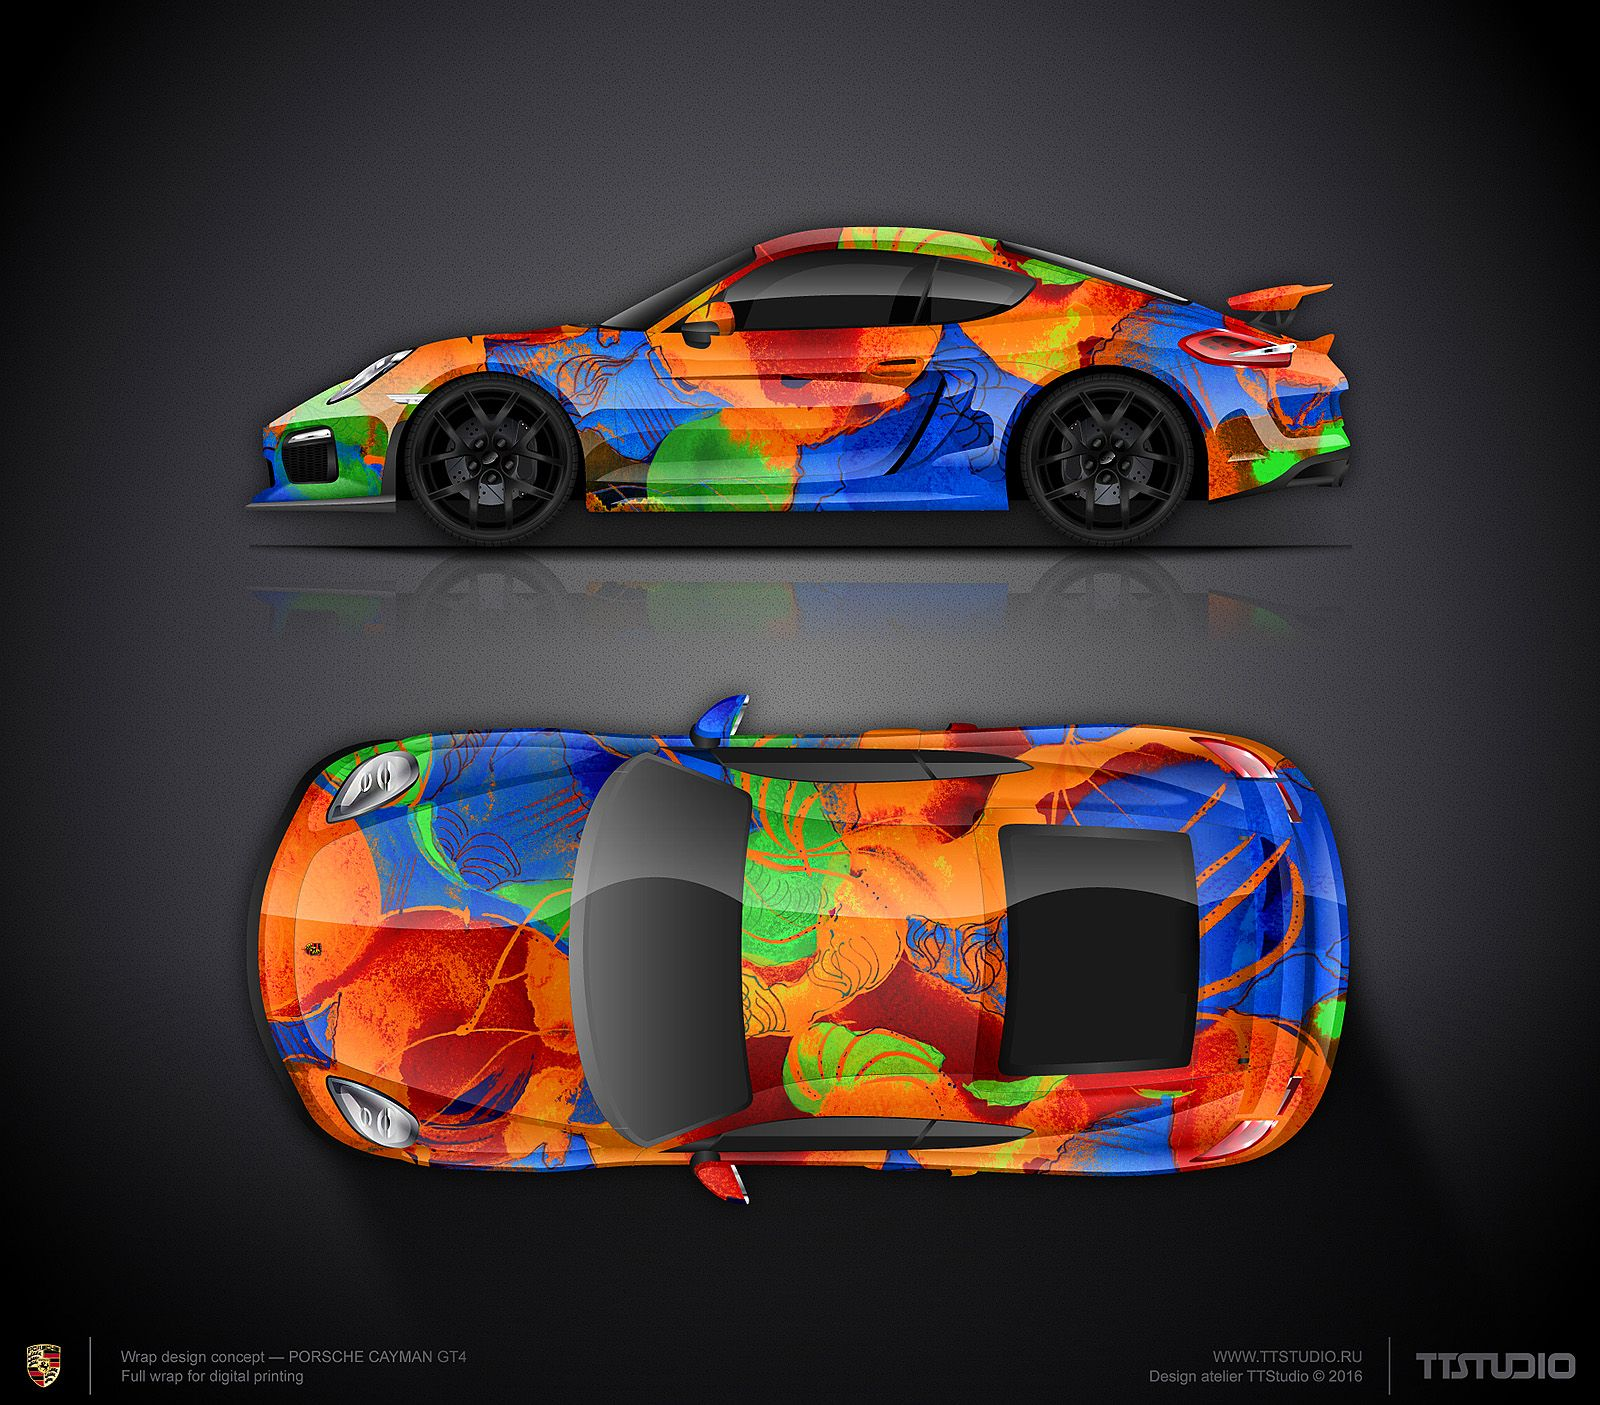 art car wrap design concept #38 for porsche cayman gt4 for sale (can